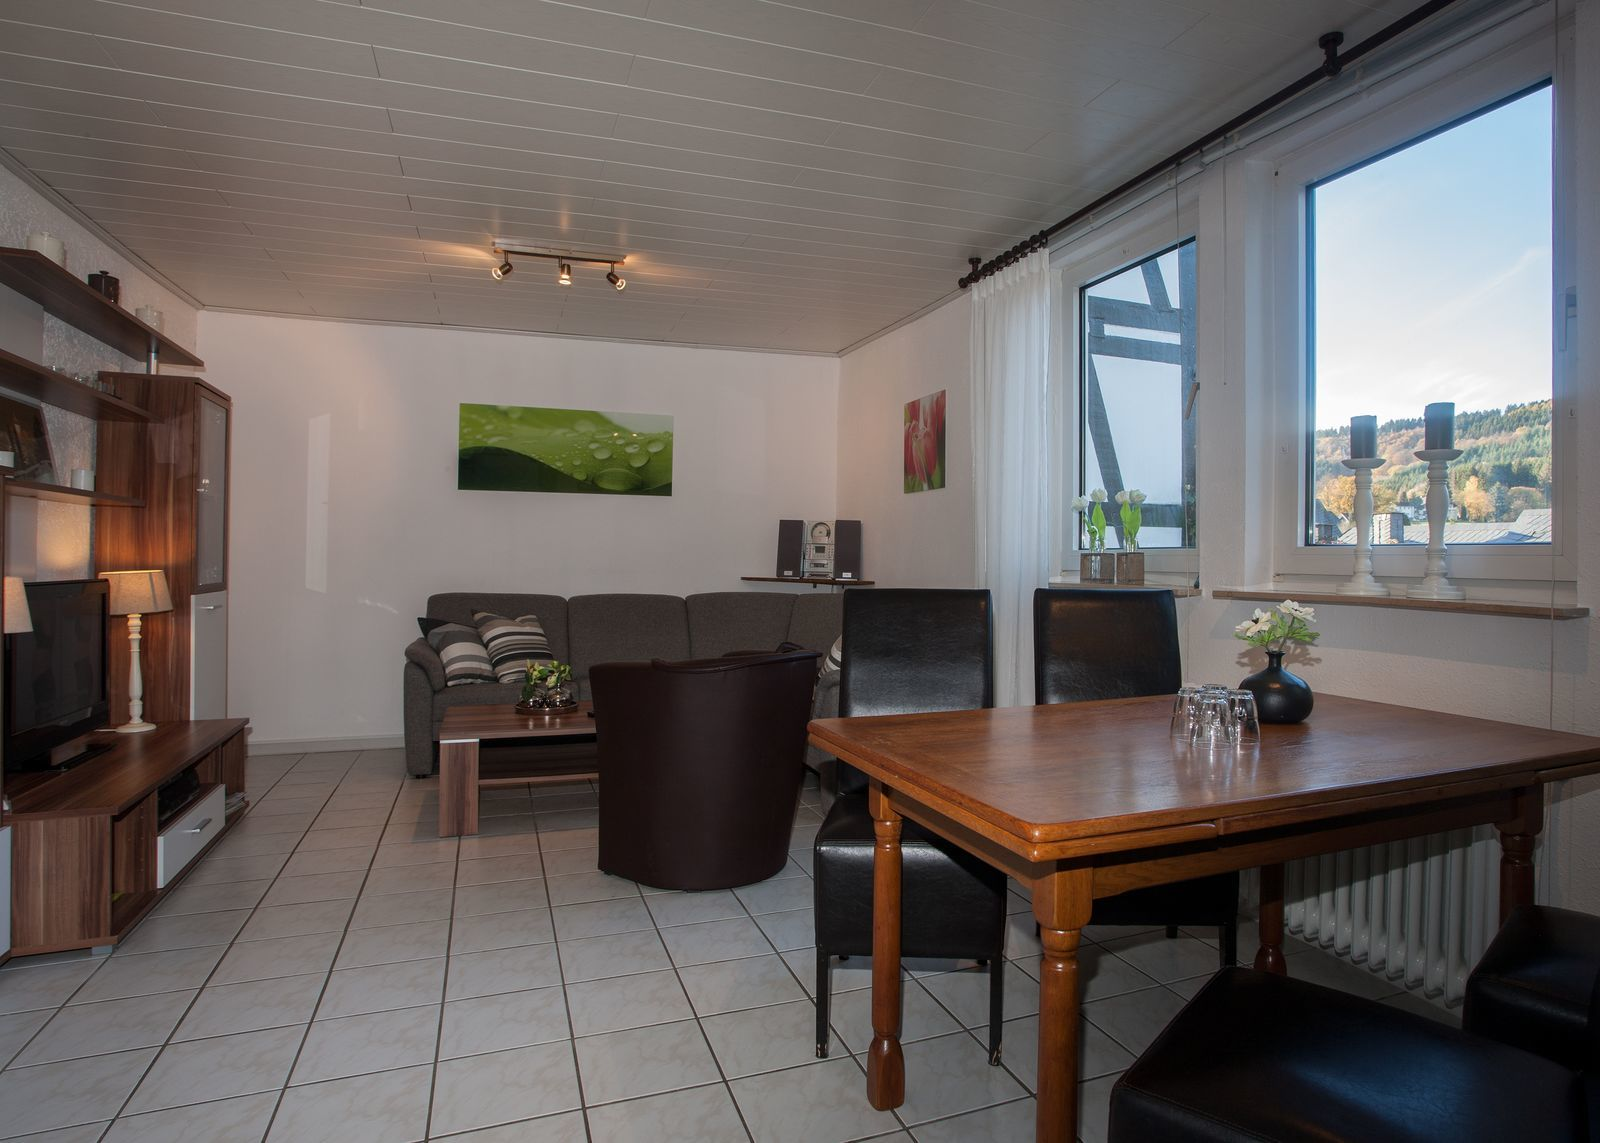 Appartement - Am Grimmen 16